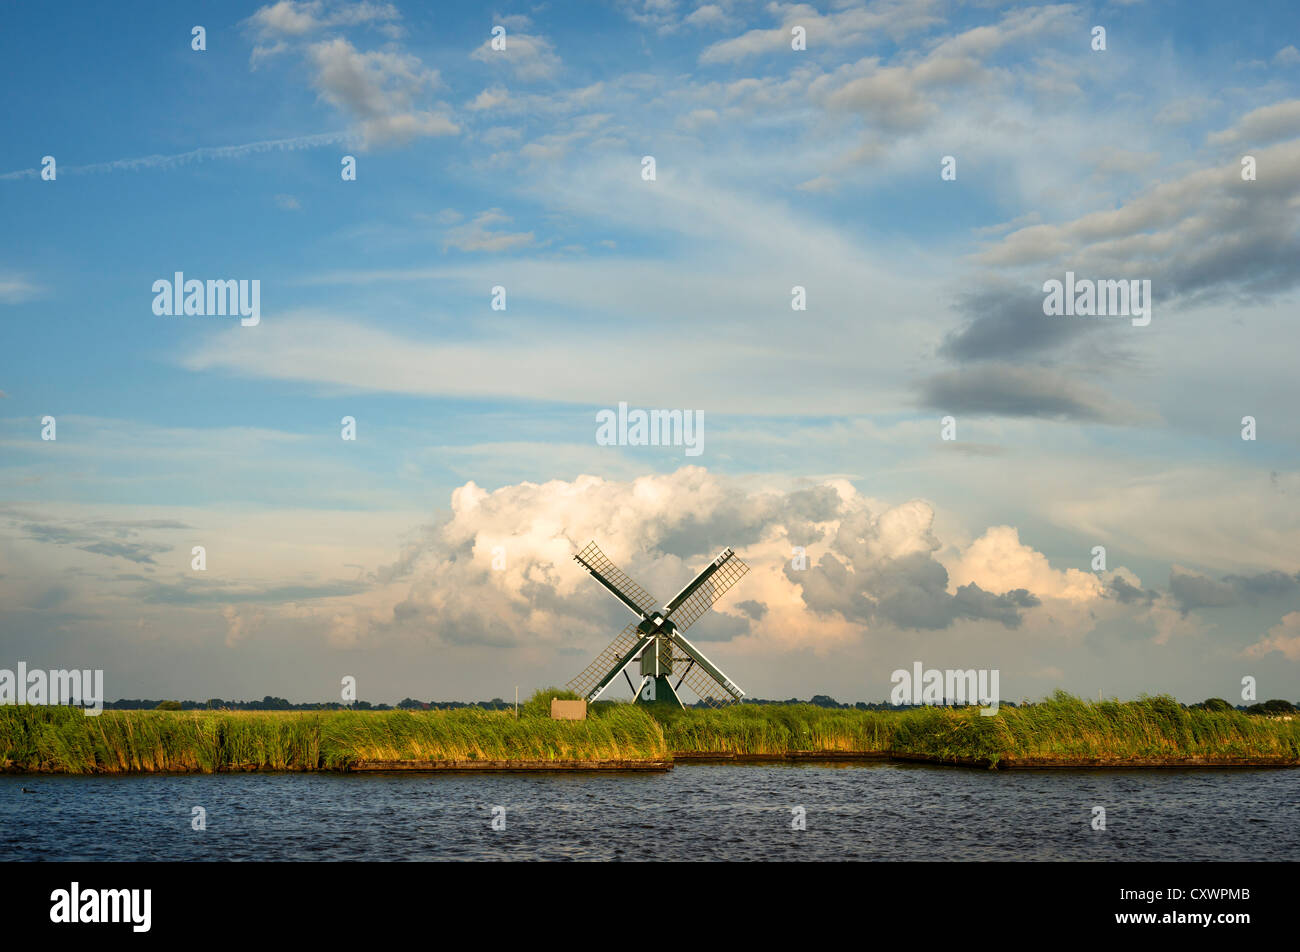 Windmill in rural landscape - Stock Image